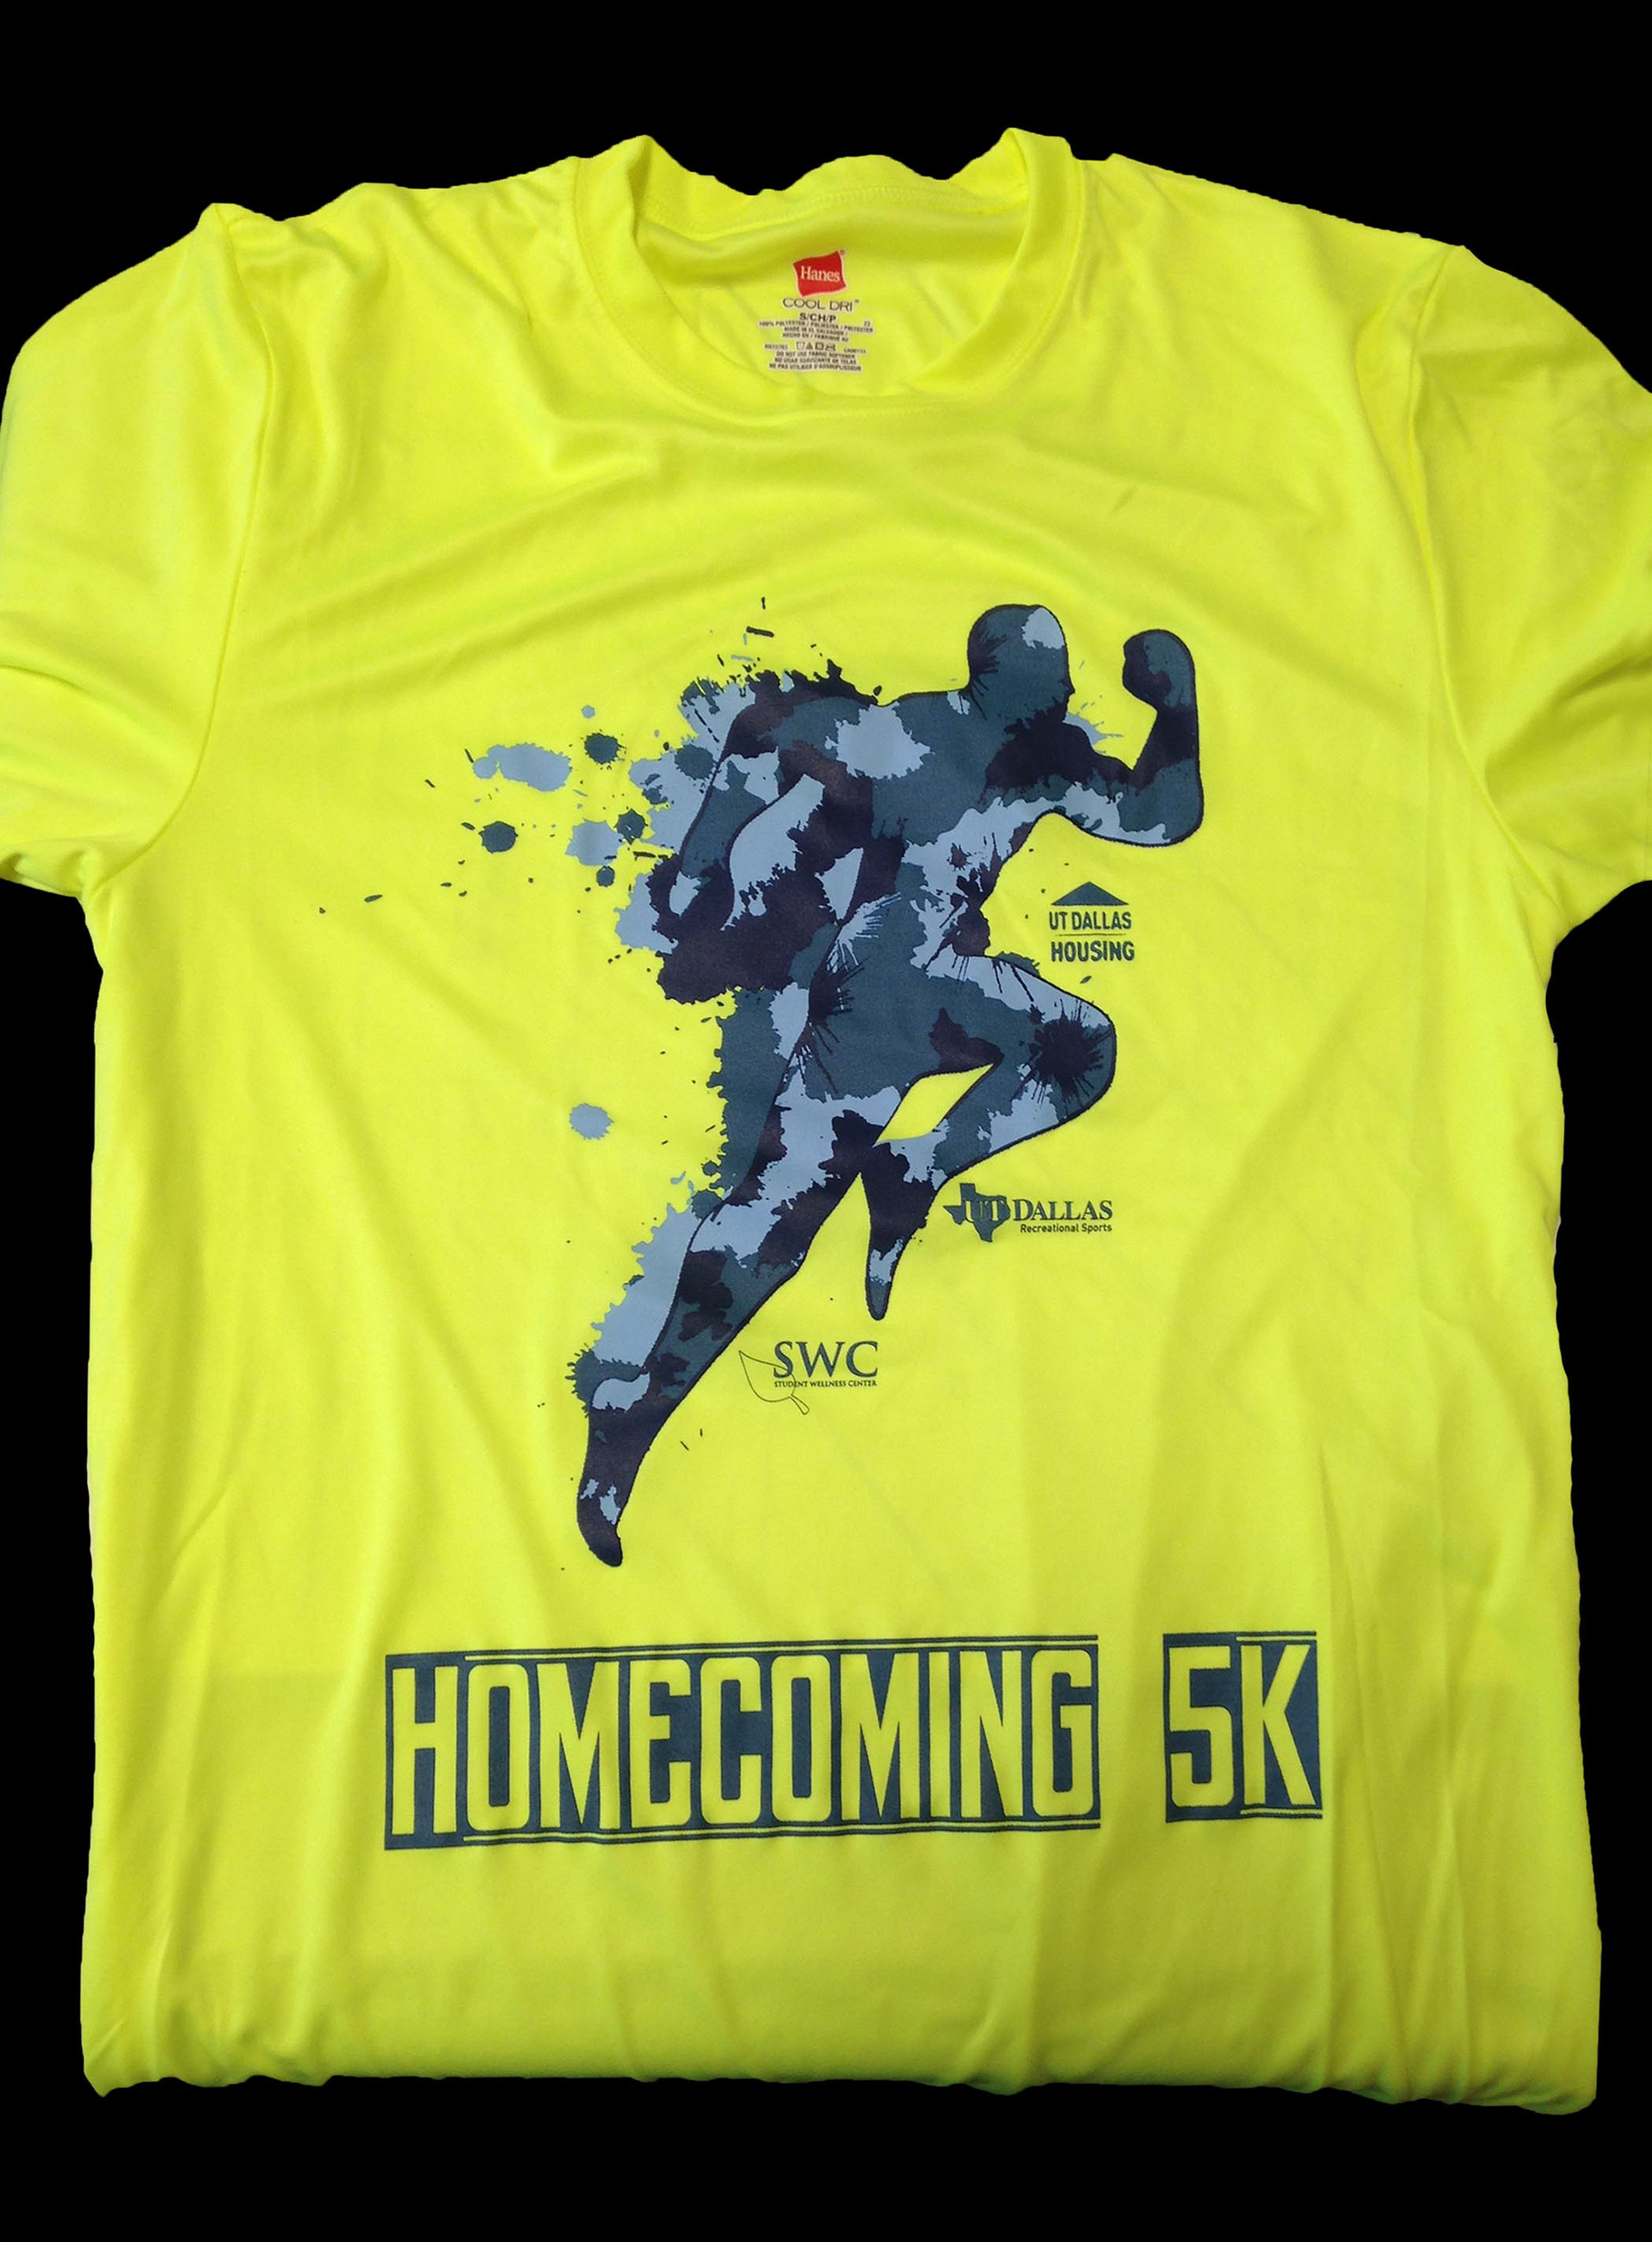 Nicole Brown Homecoming 5k T Shirt 2015